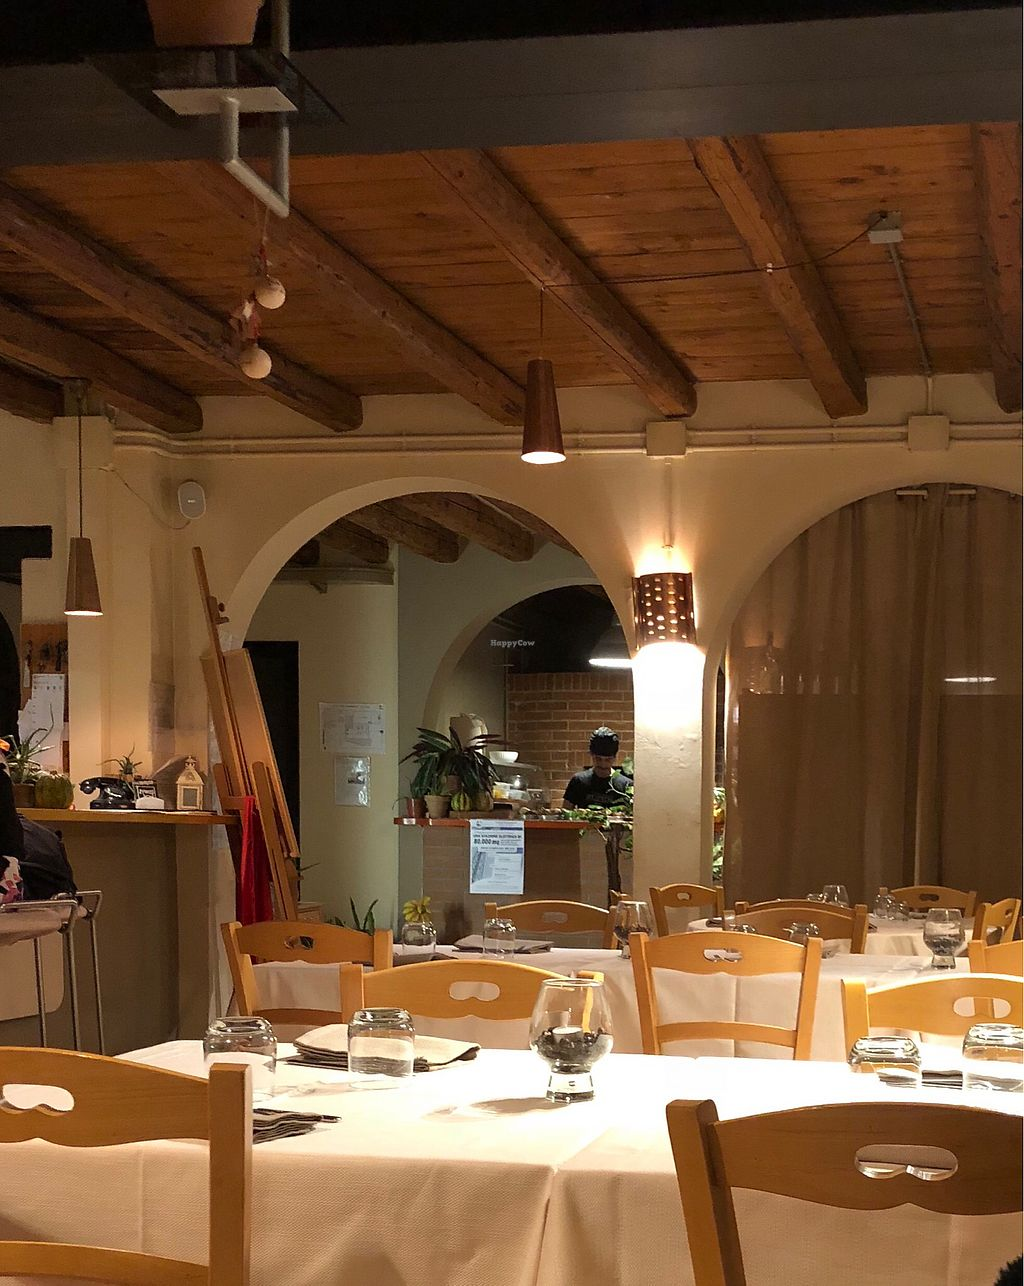 """Photo of Ecosteria Parco Santi Angeli  by <a href=""""/members/profile/maddoc"""">maddoc</a> <br/>interno <br/> March 17, 2018  - <a href='/contact/abuse/image/101163/371822'>Report</a>"""